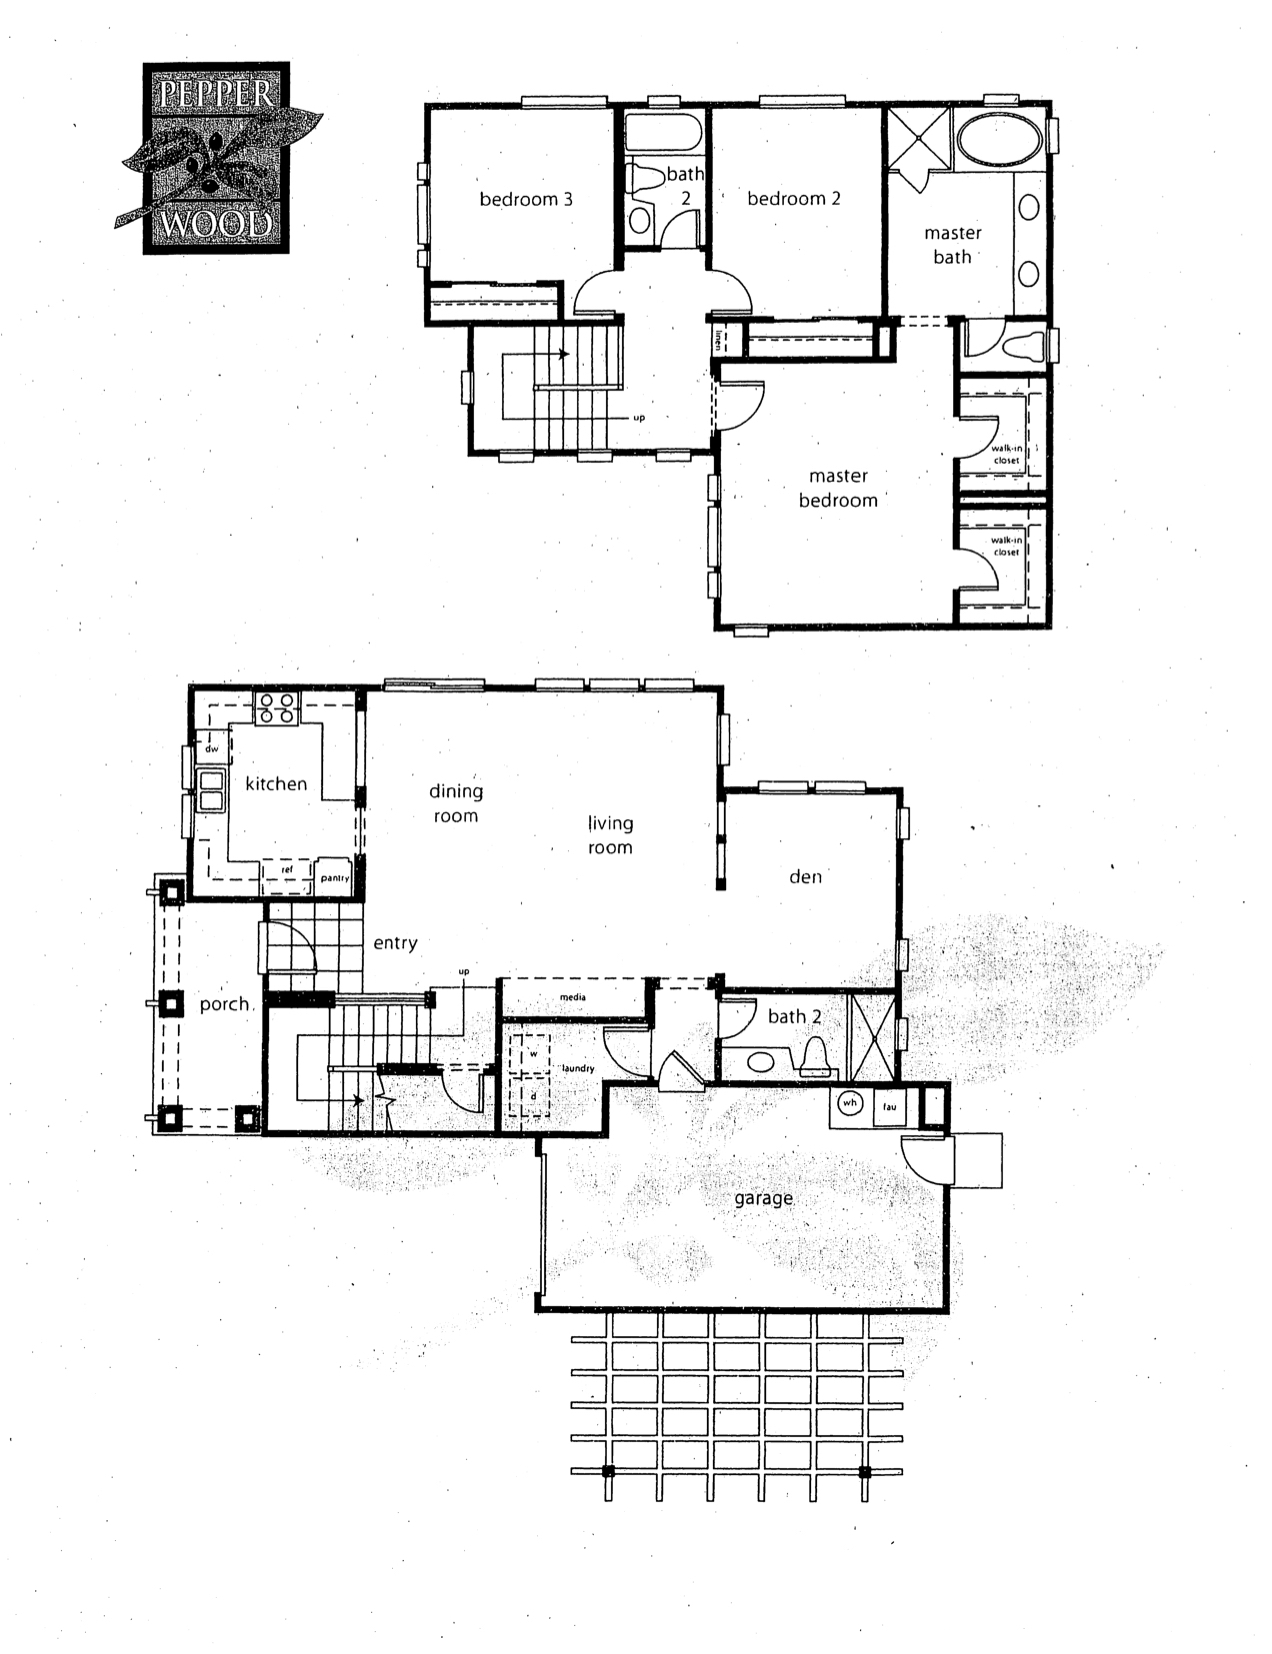 635 Pepperwood Lots and Dimensions 2004 revised.jpg